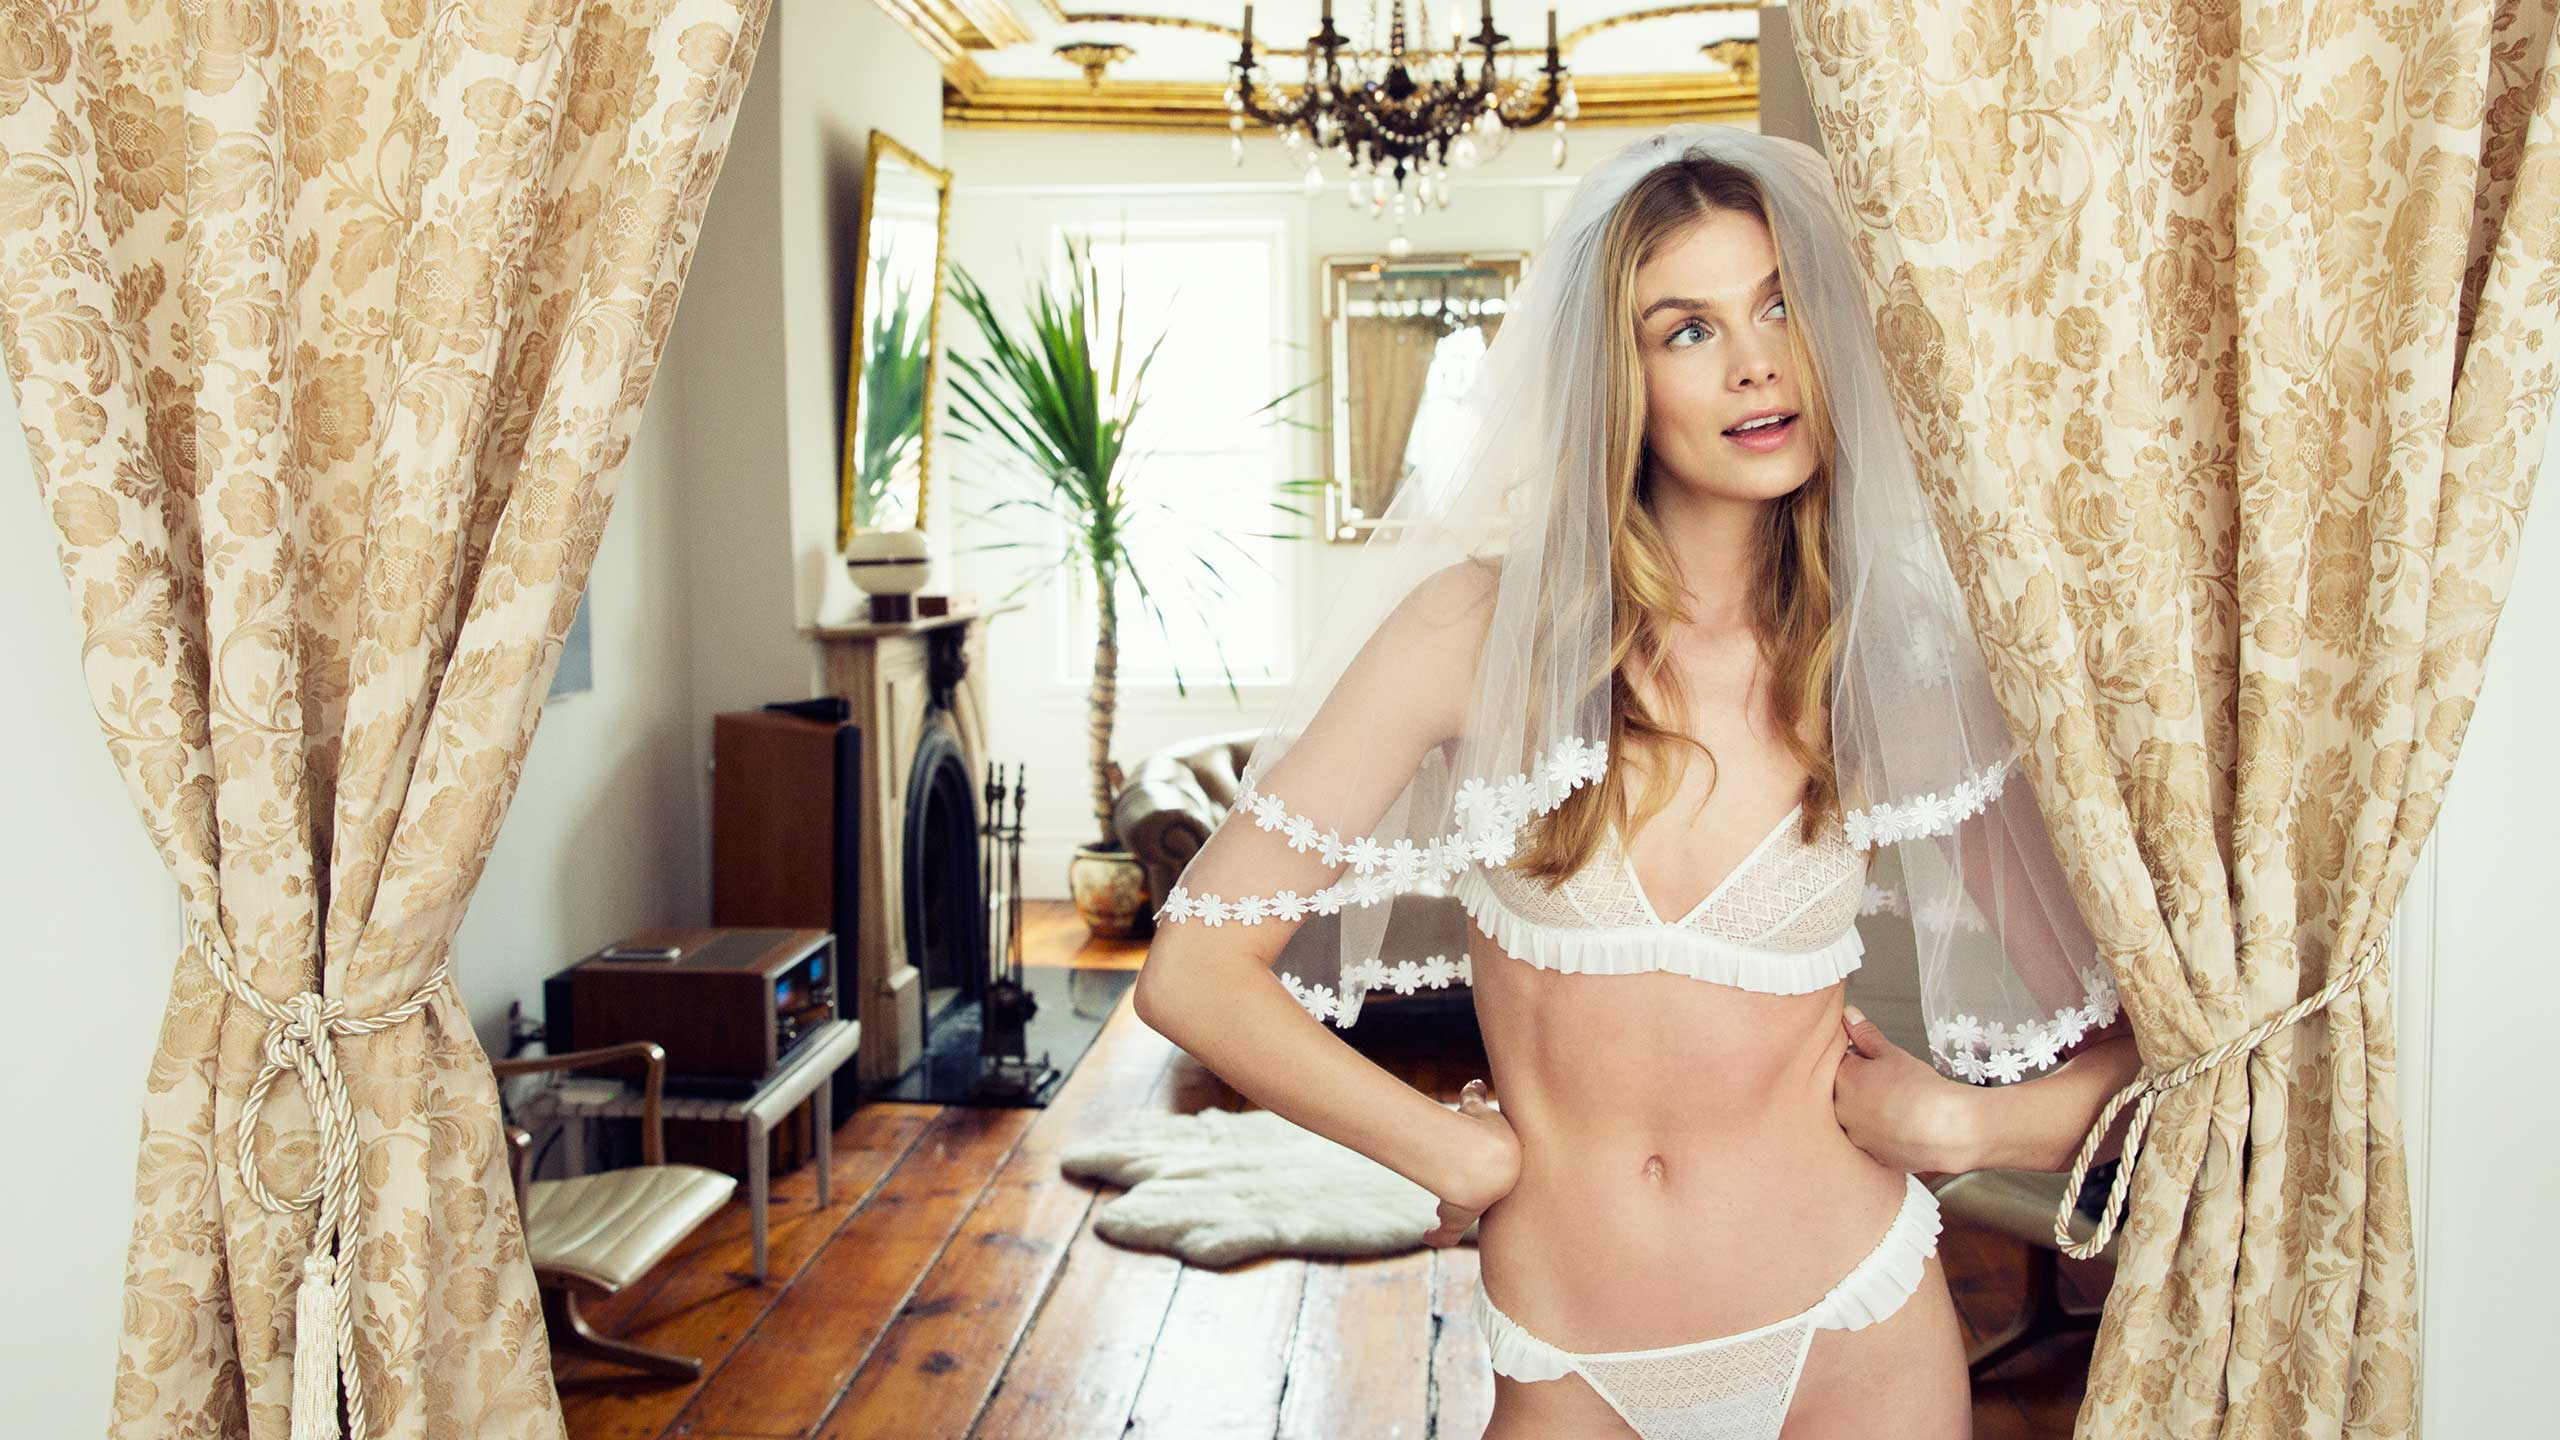 What to Wear Under Your Wedding Dress